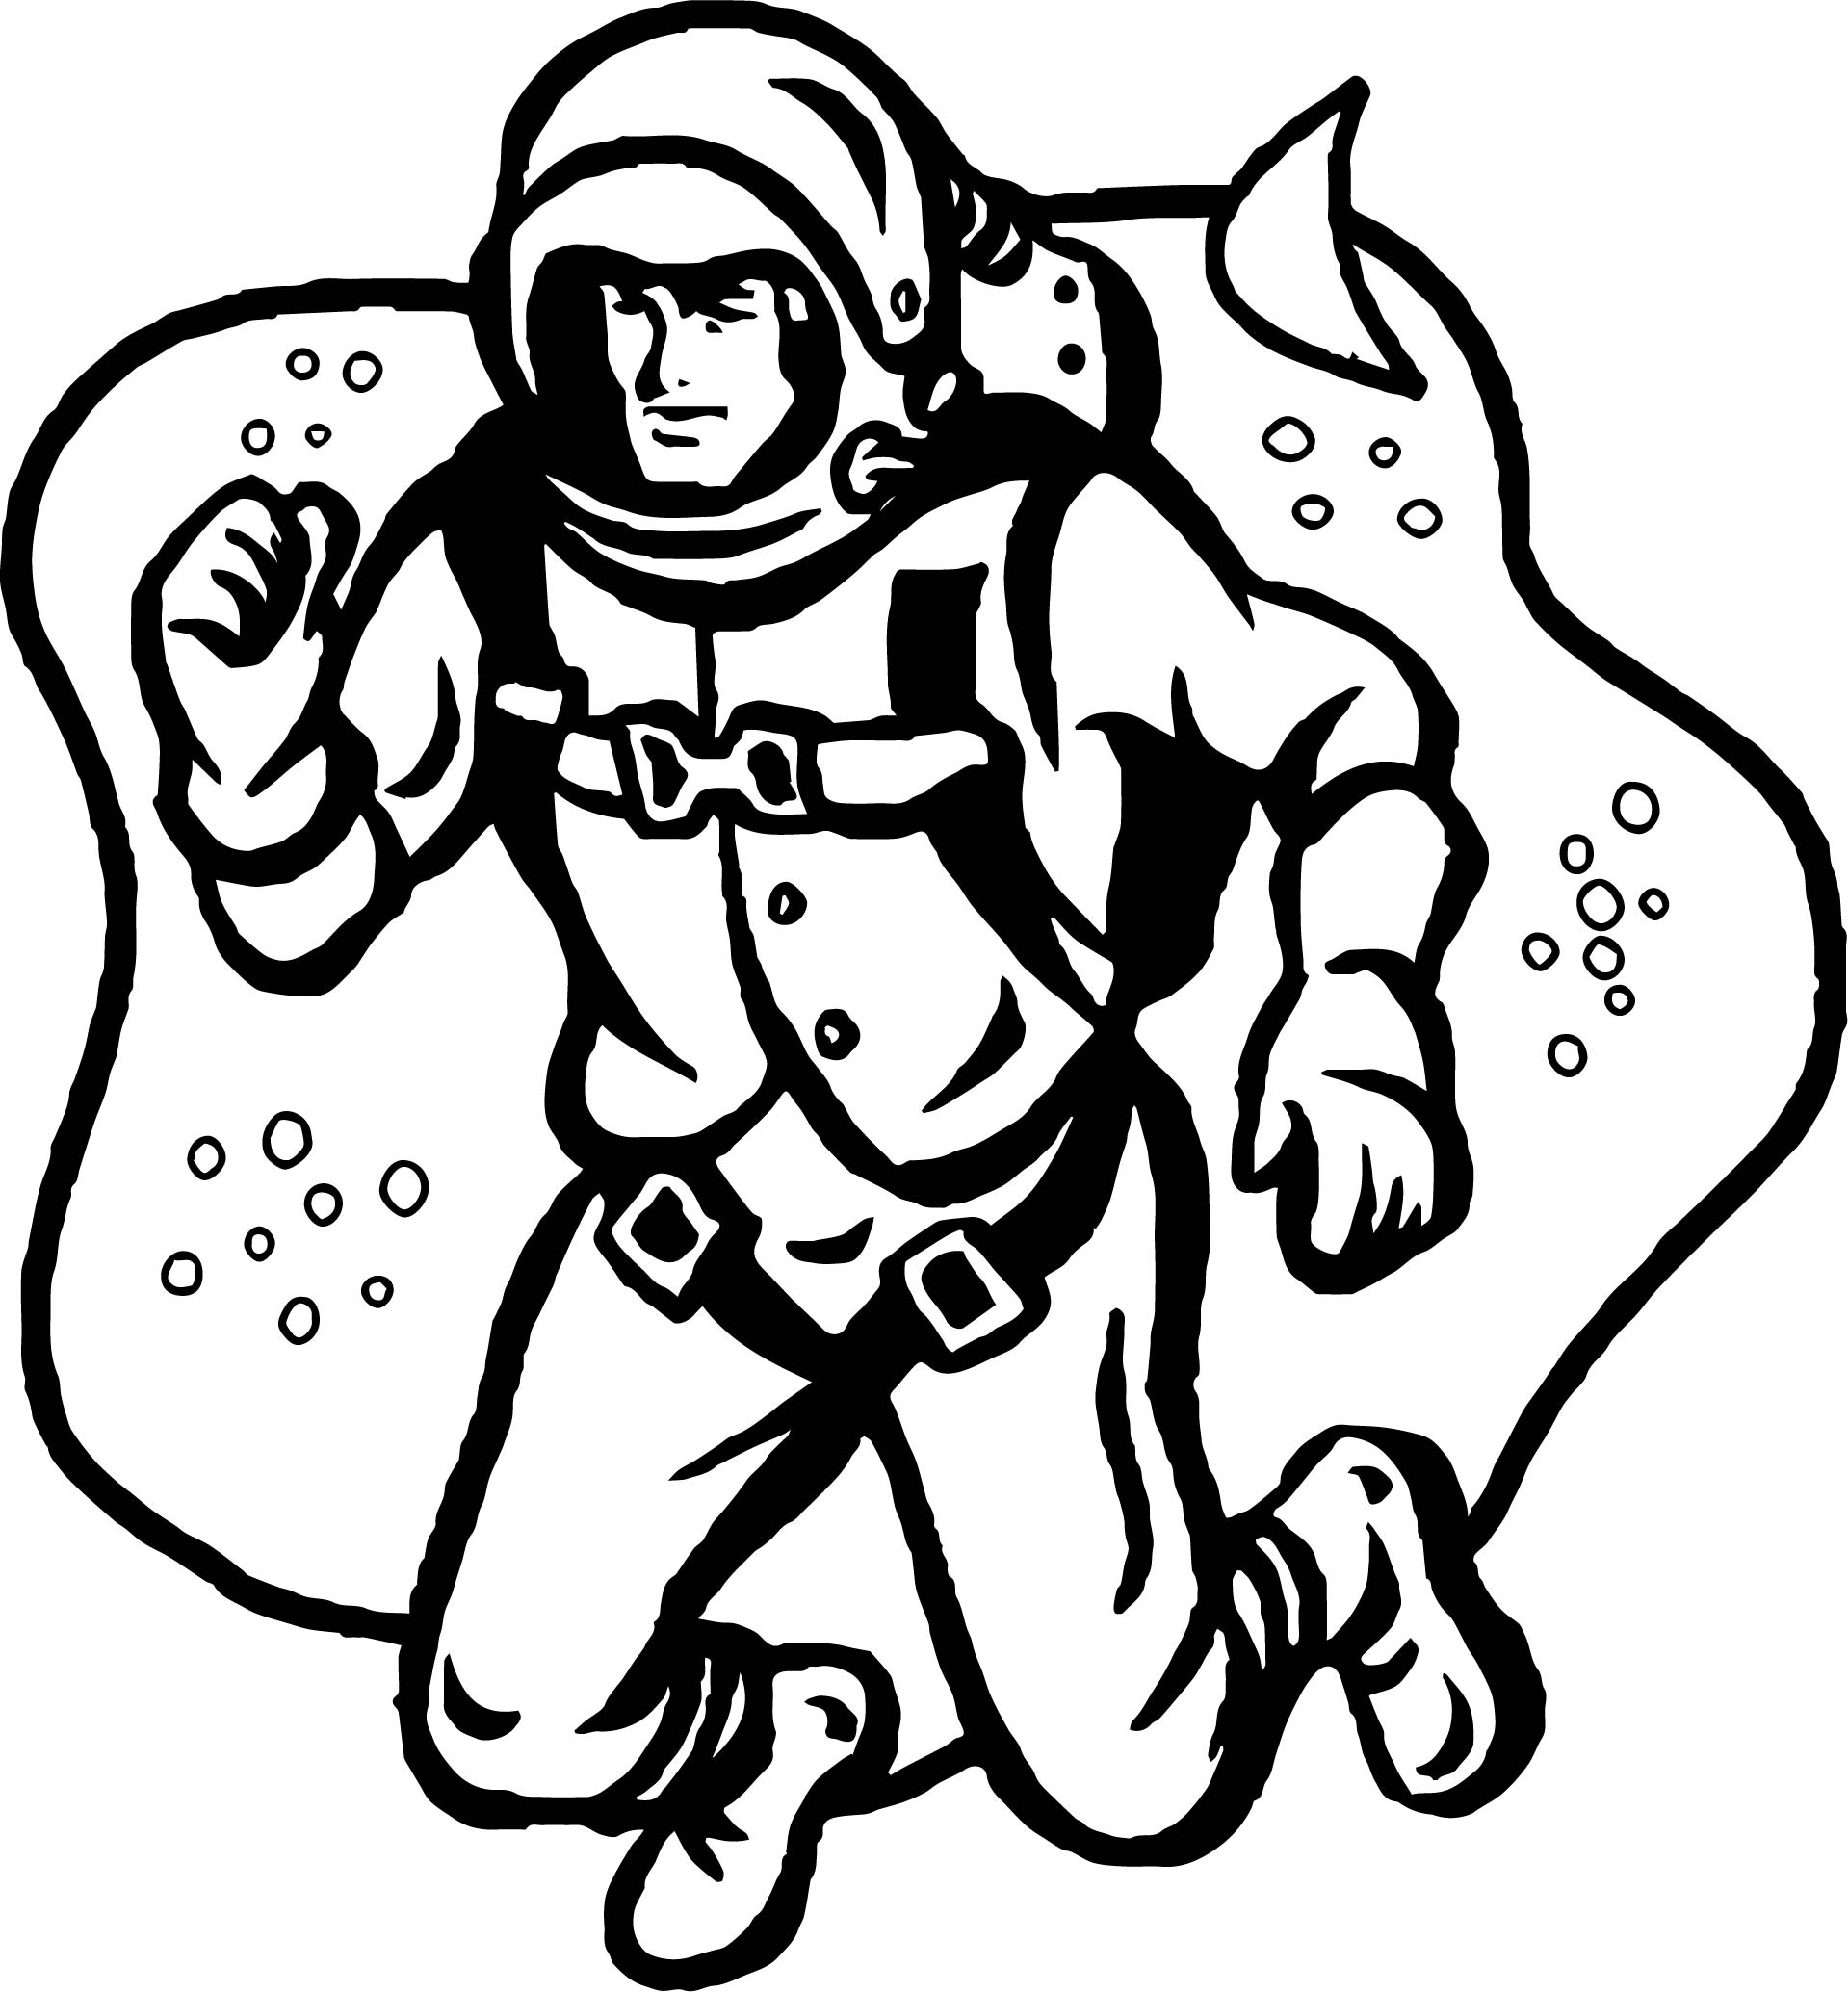 Space Astronaut Fly Coloring Page